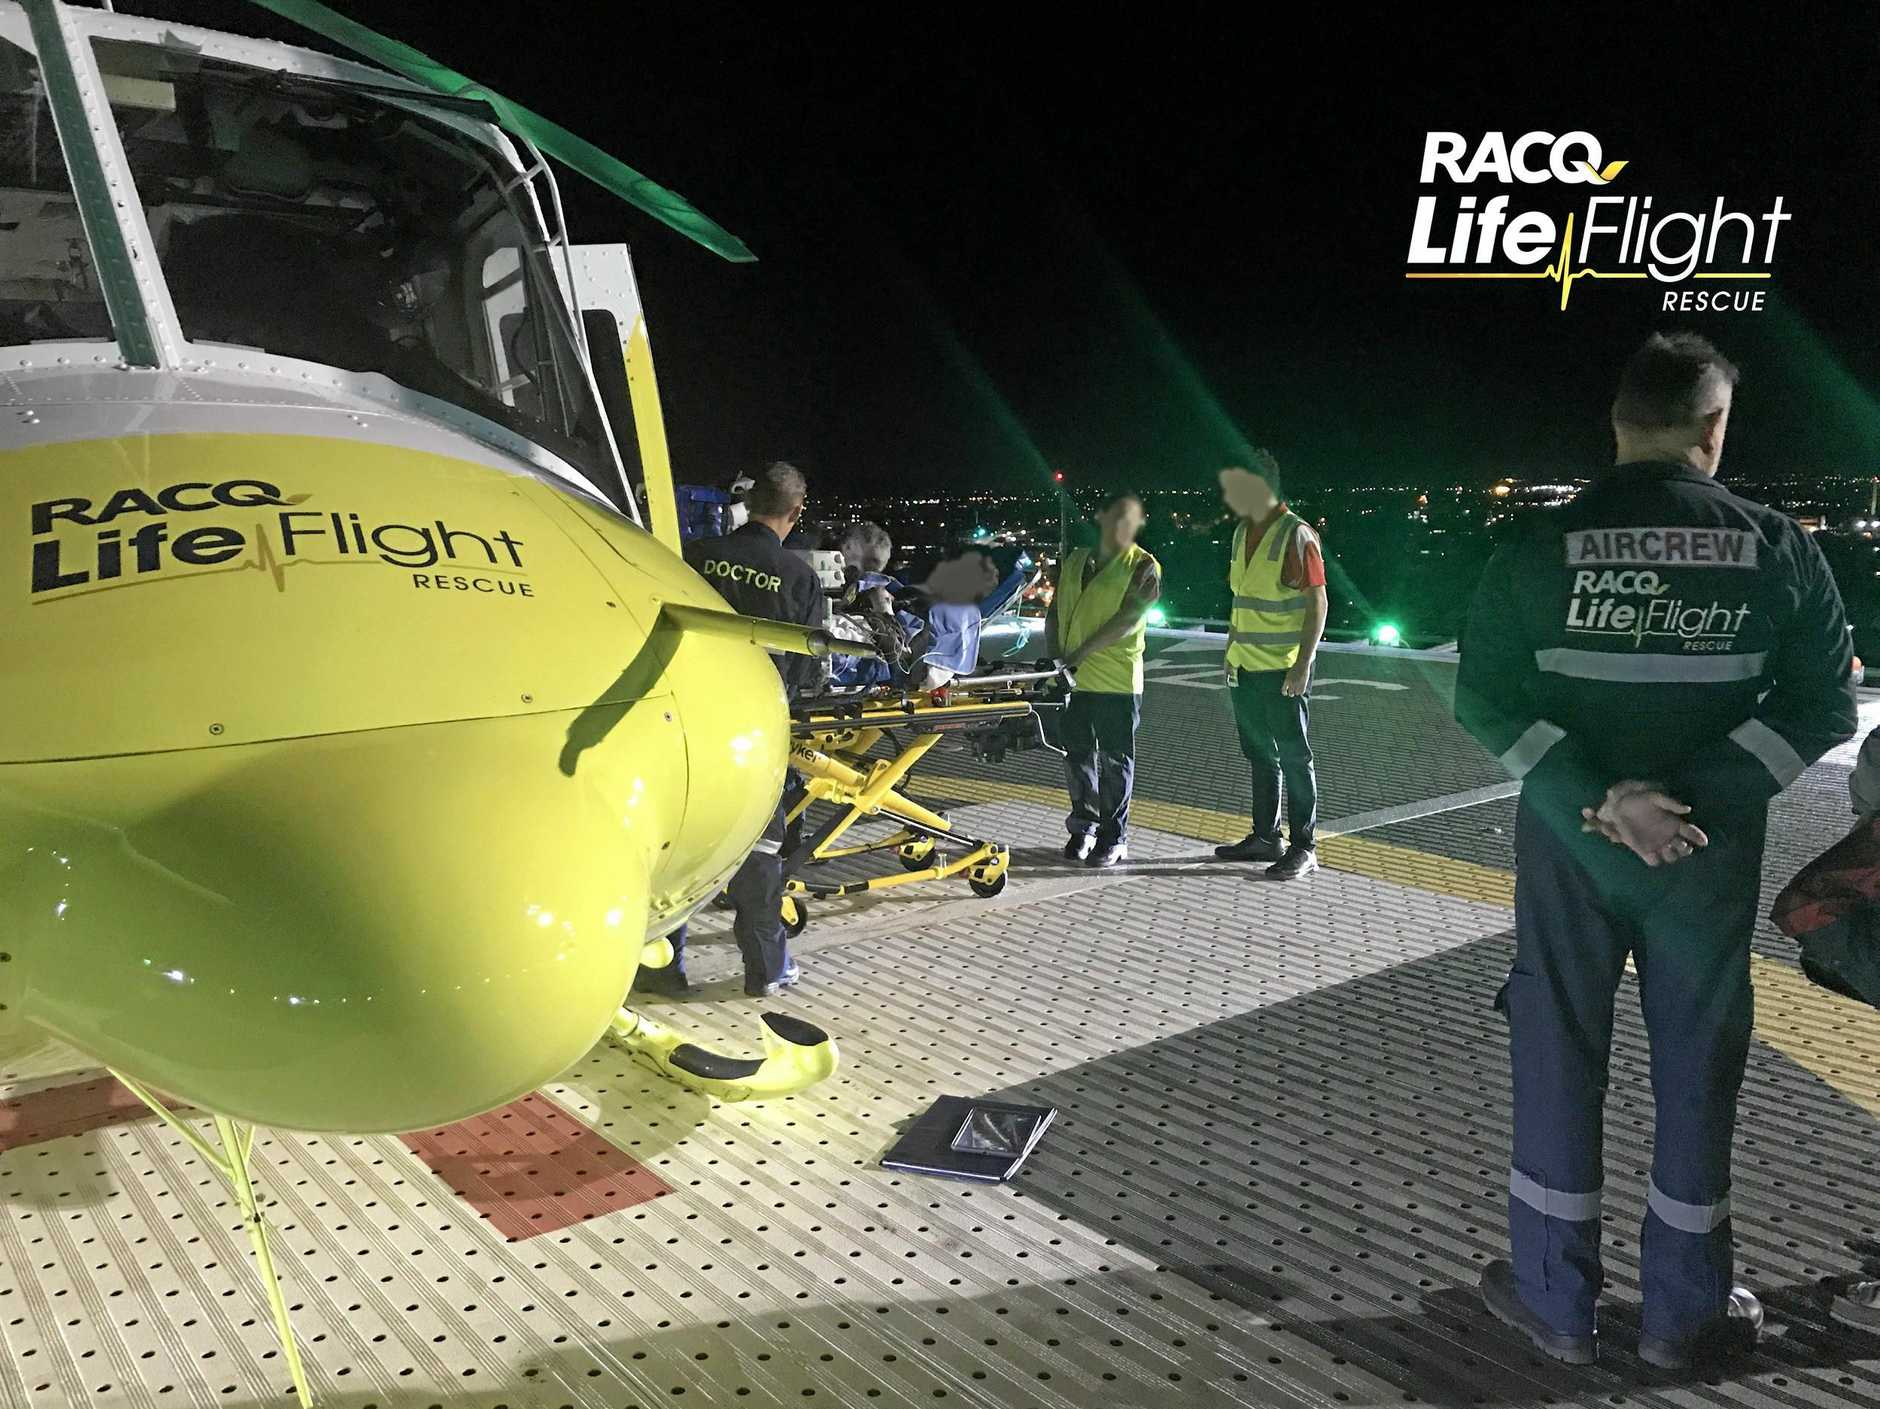 A teenager was airlifted by RACQ LifeFlight helicopter to hospital after a farming accident near Kilcoy.